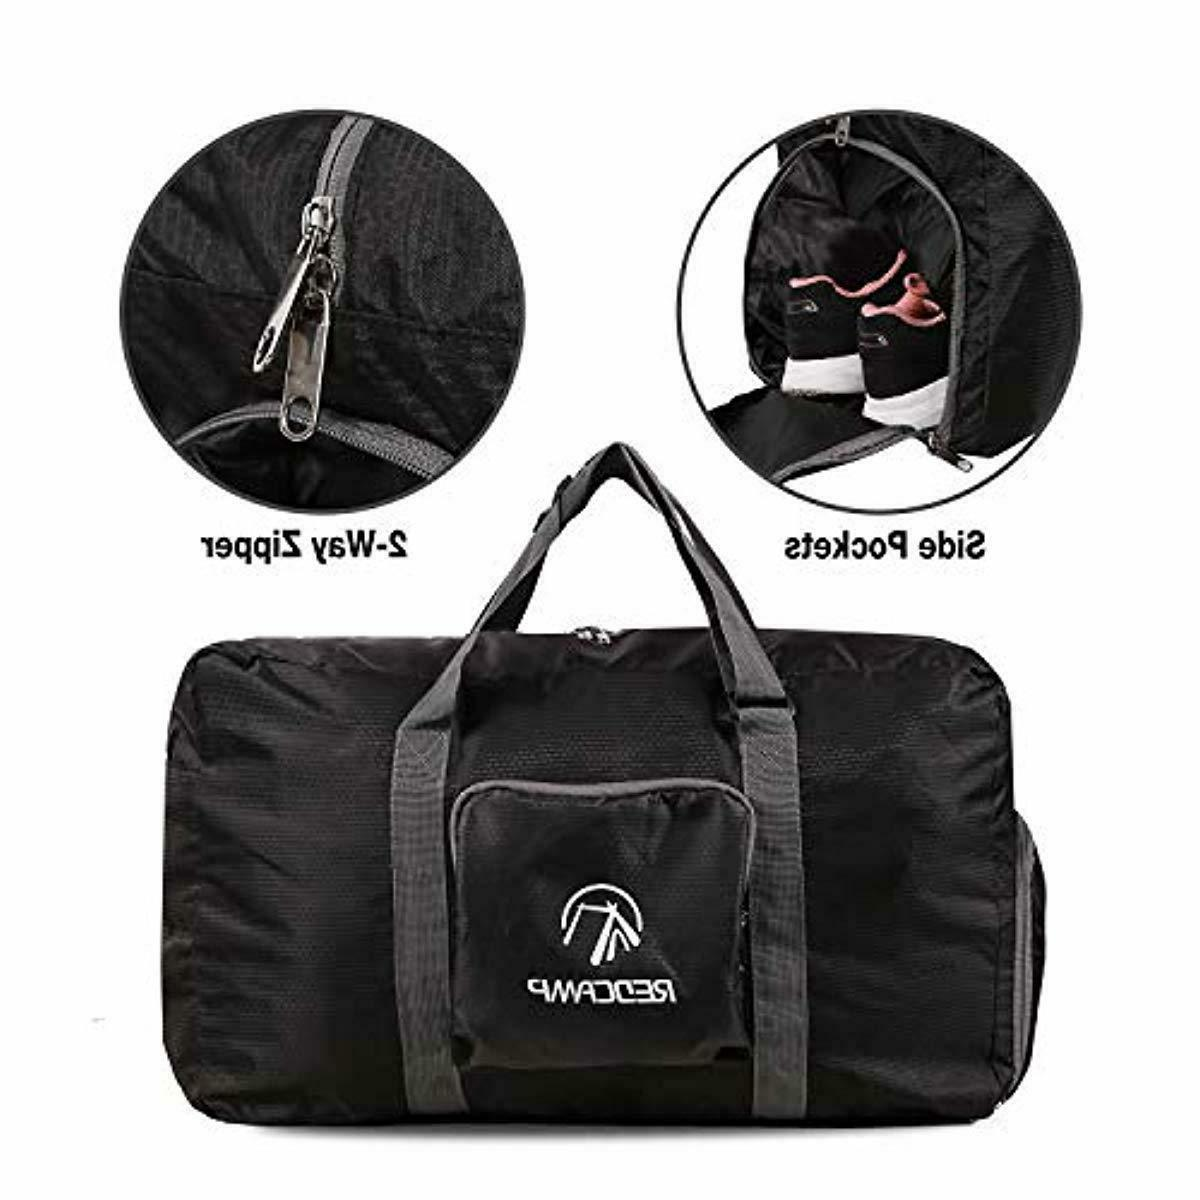 Foldable with Compartment, Lightweight Travel Duff